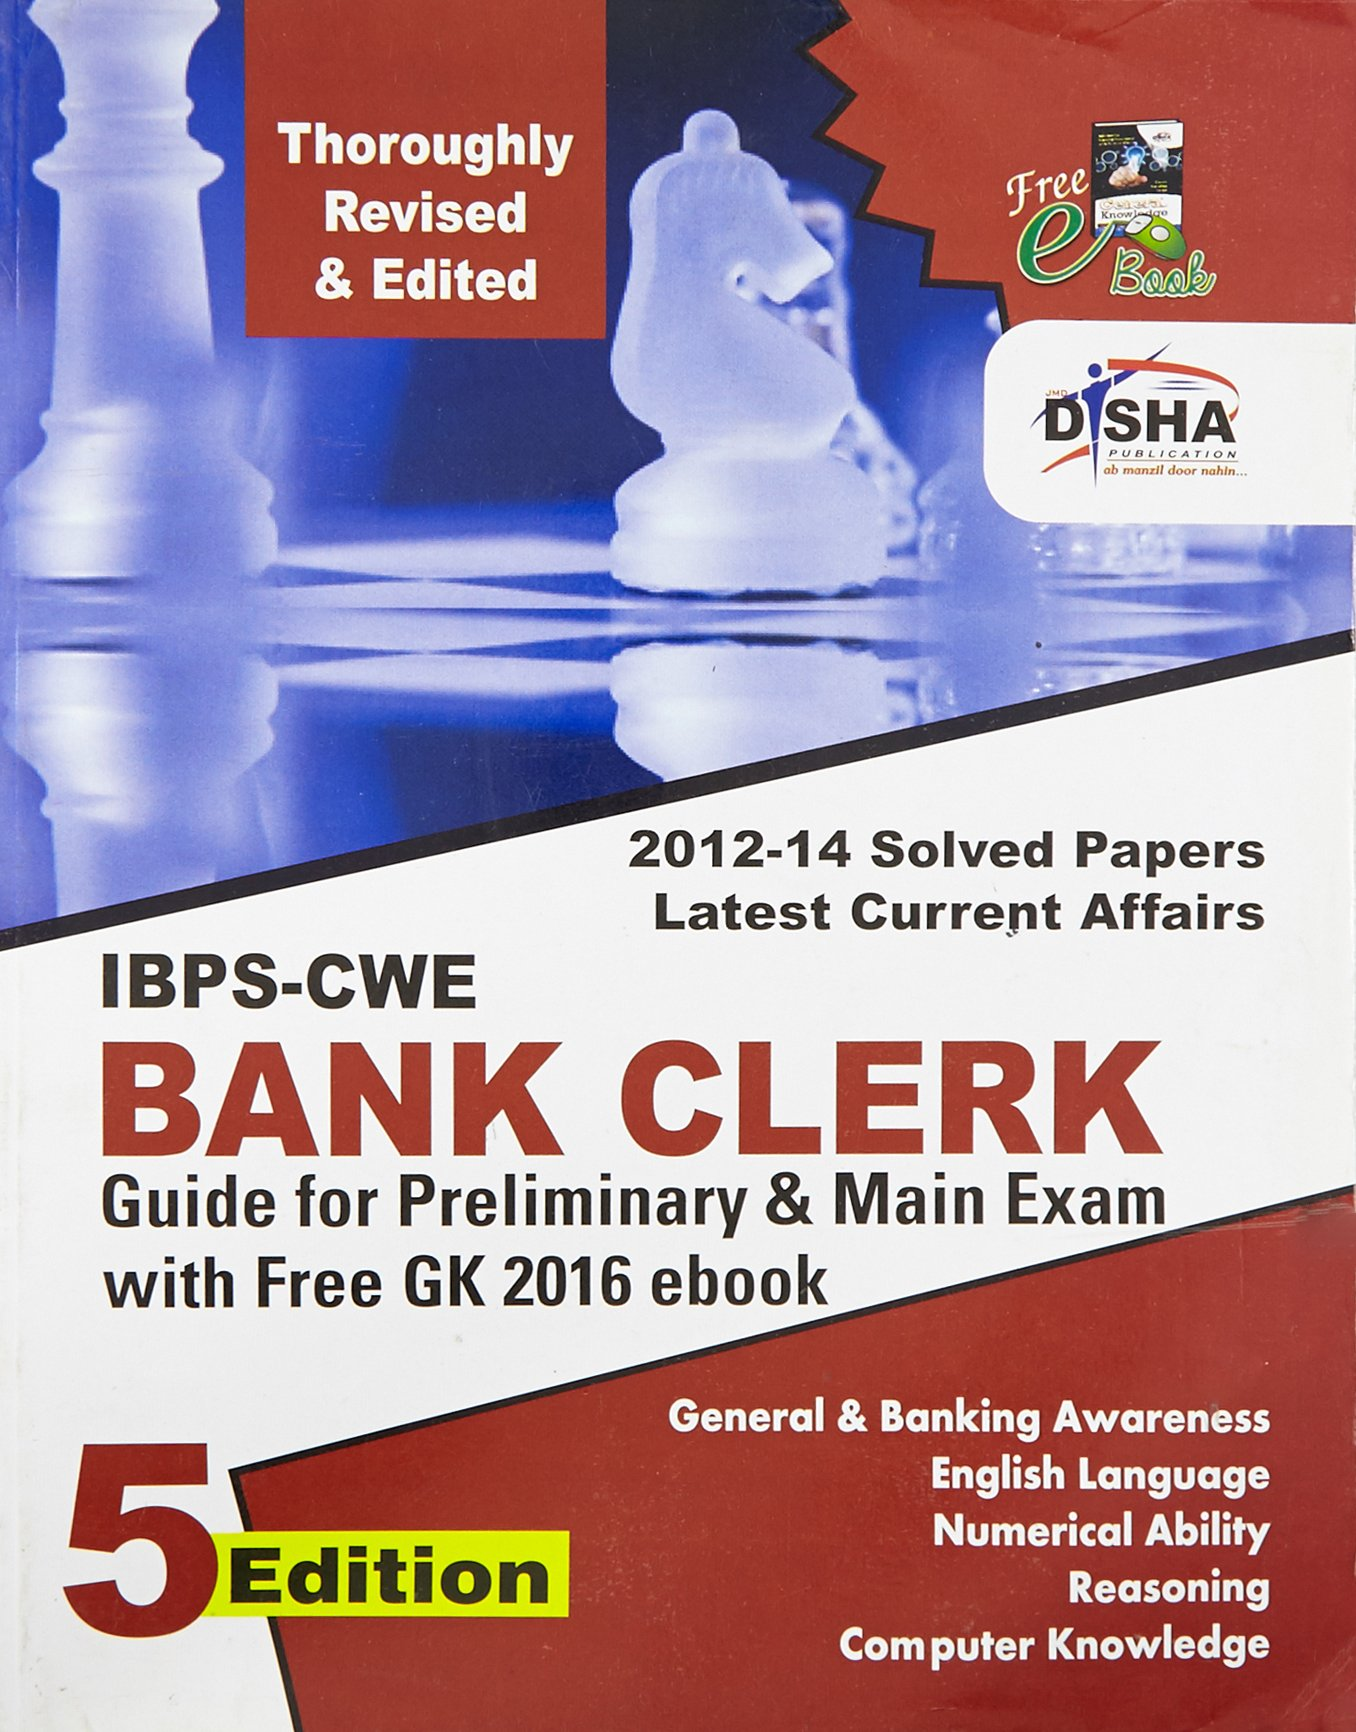 New IBPS-CWE Bank Clerk Guide for Prelim & Main Exams 5th English Edition  Paperback - 2015: Disha Experts: 9789385576560: Amazon.com: Books